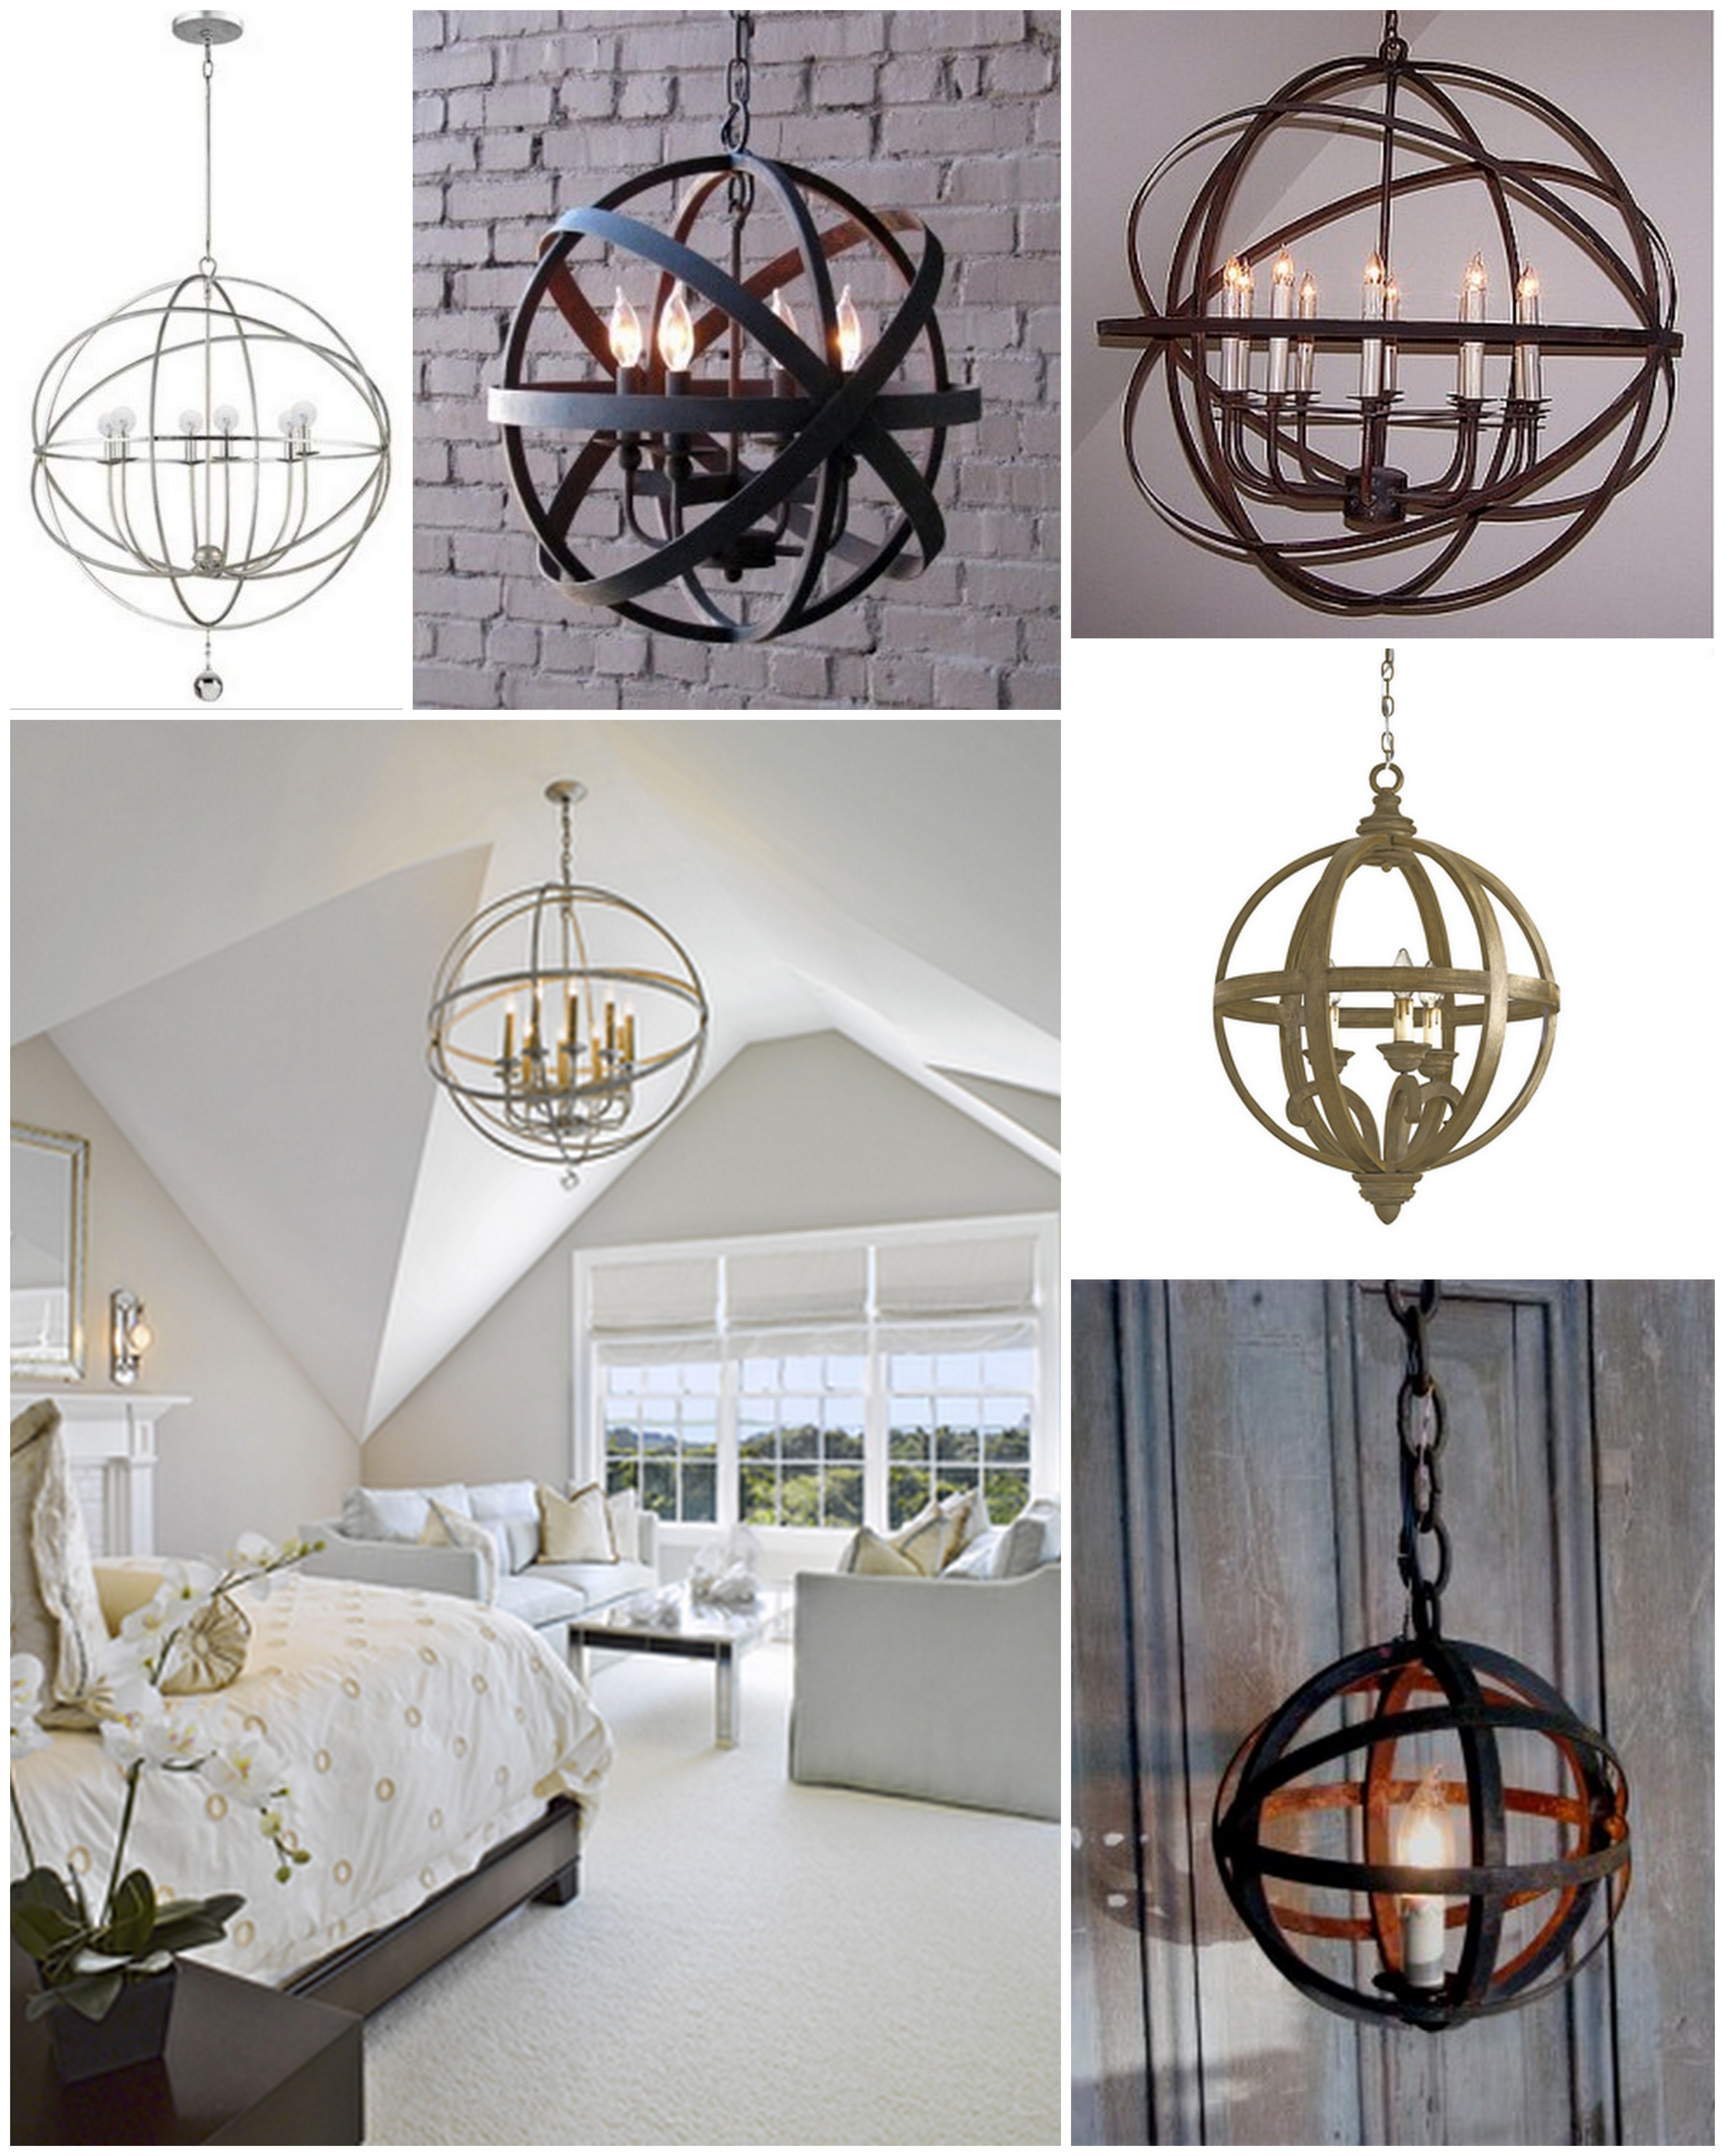 orbit light lighting Pinterest